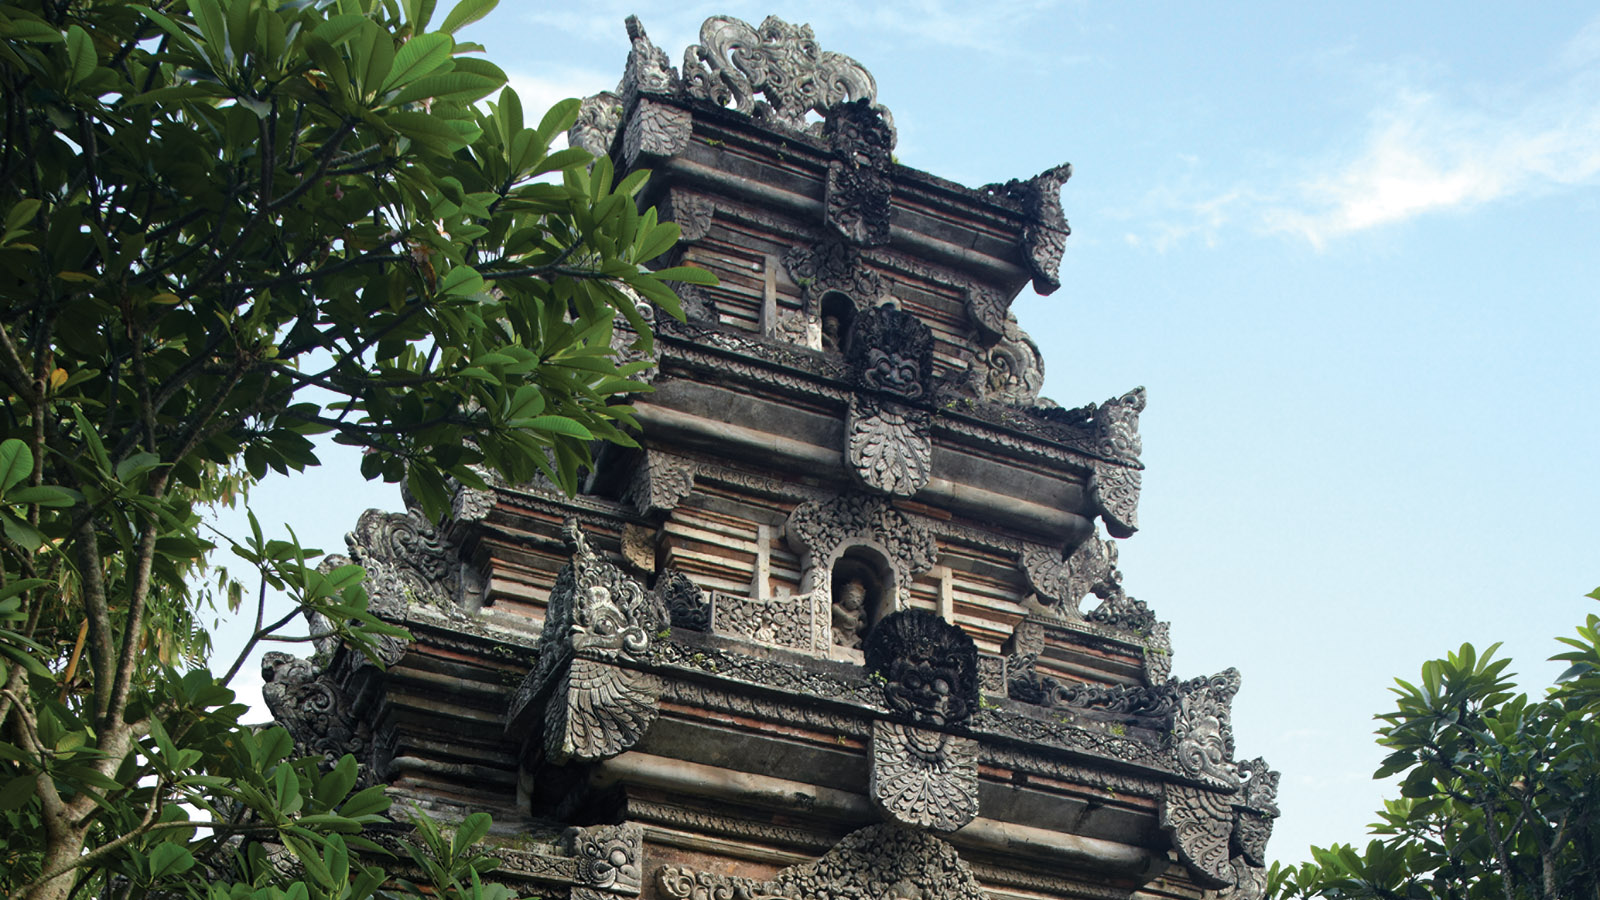 Find out More about Balinese Art, Culture and the Attractions in Bali – a Wonderful Tropical Paradise